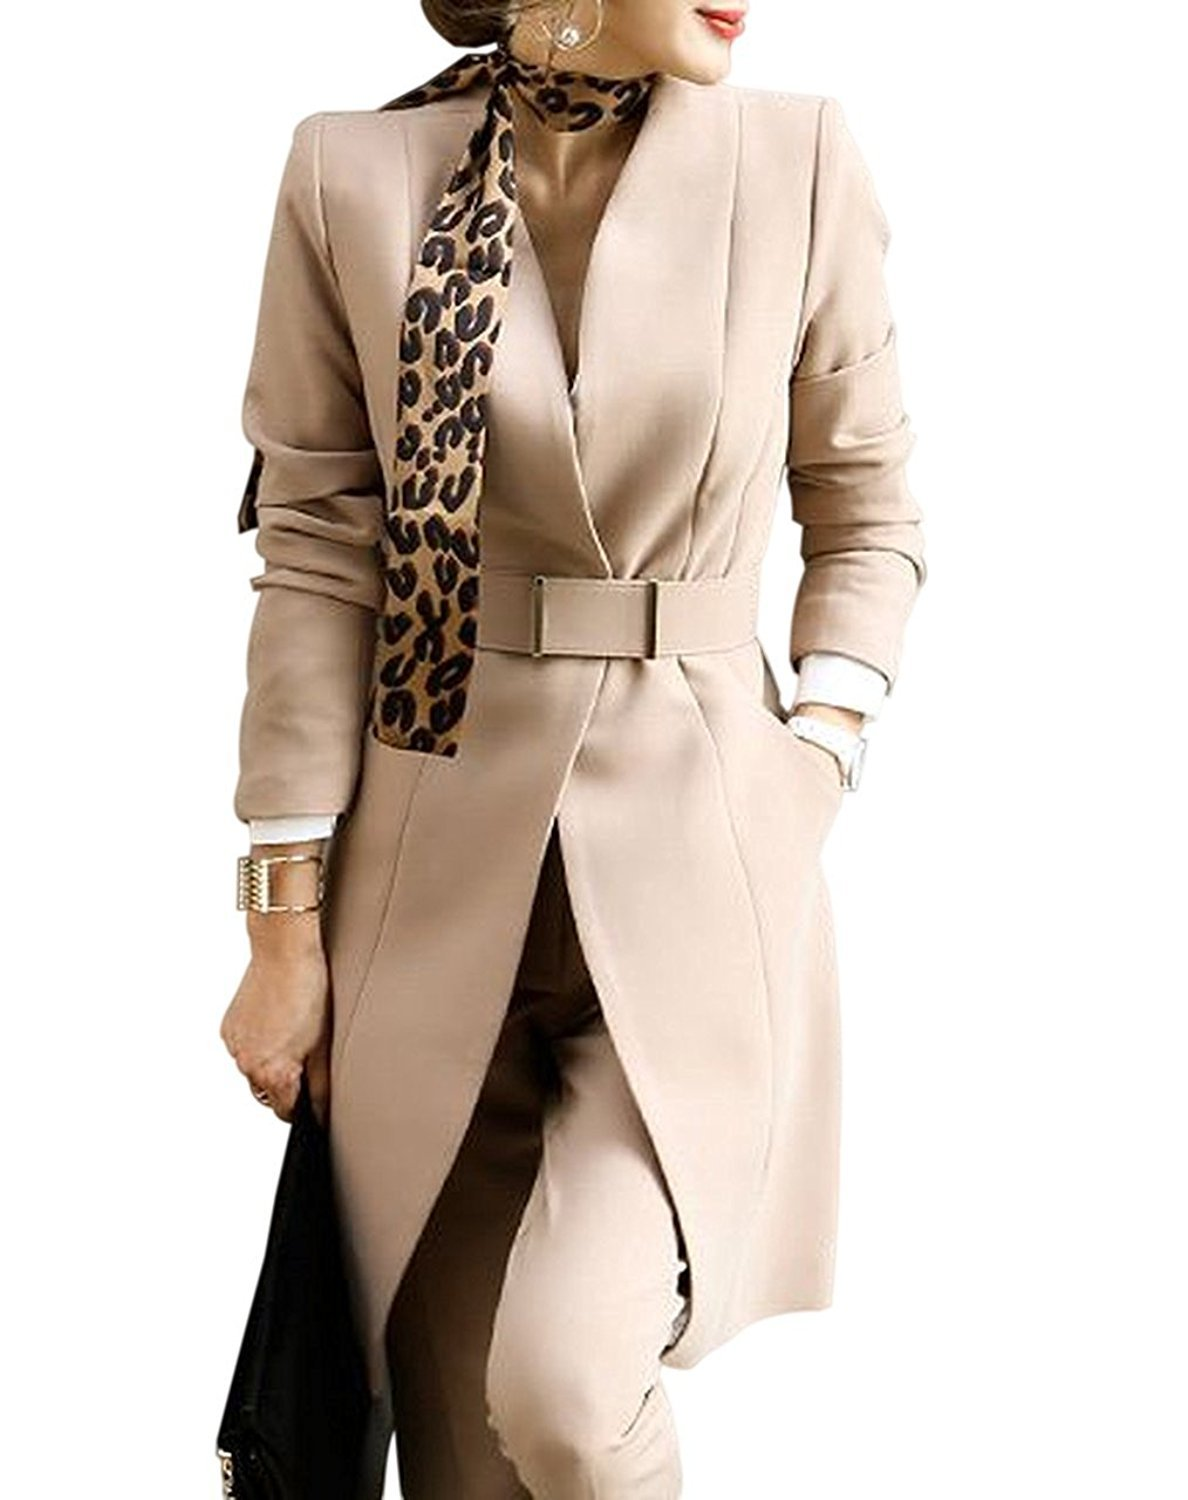 BCSY Women's Three Piece Mid Long Office Lady Blazer Business Suit Set